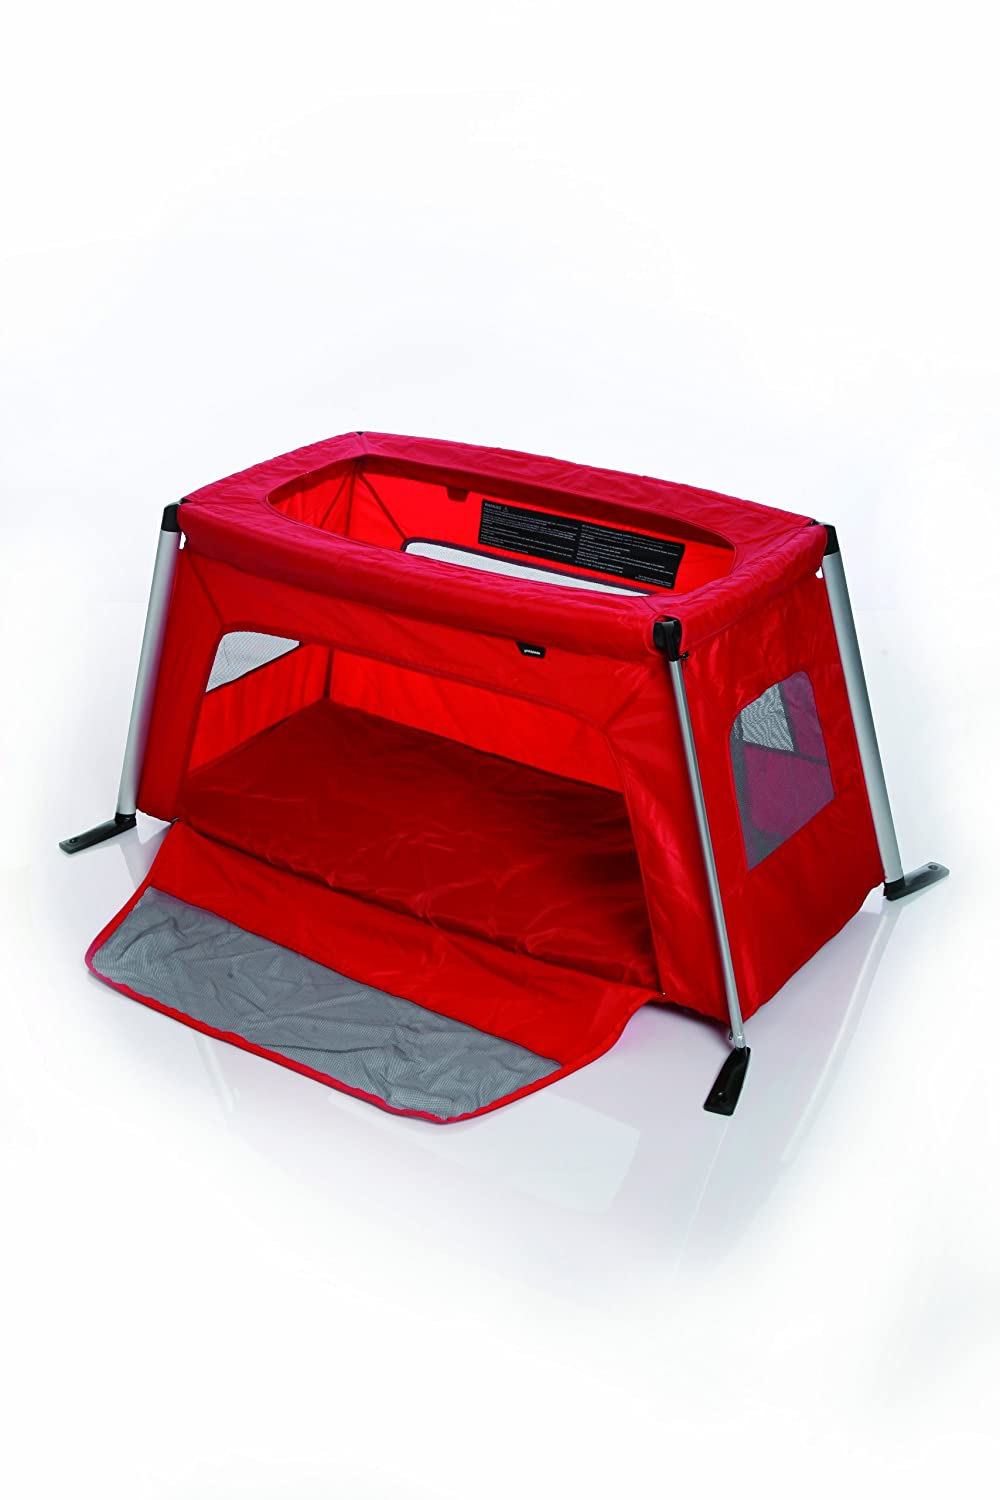 amazoncom phil u0026 teds traveller crib red by baby